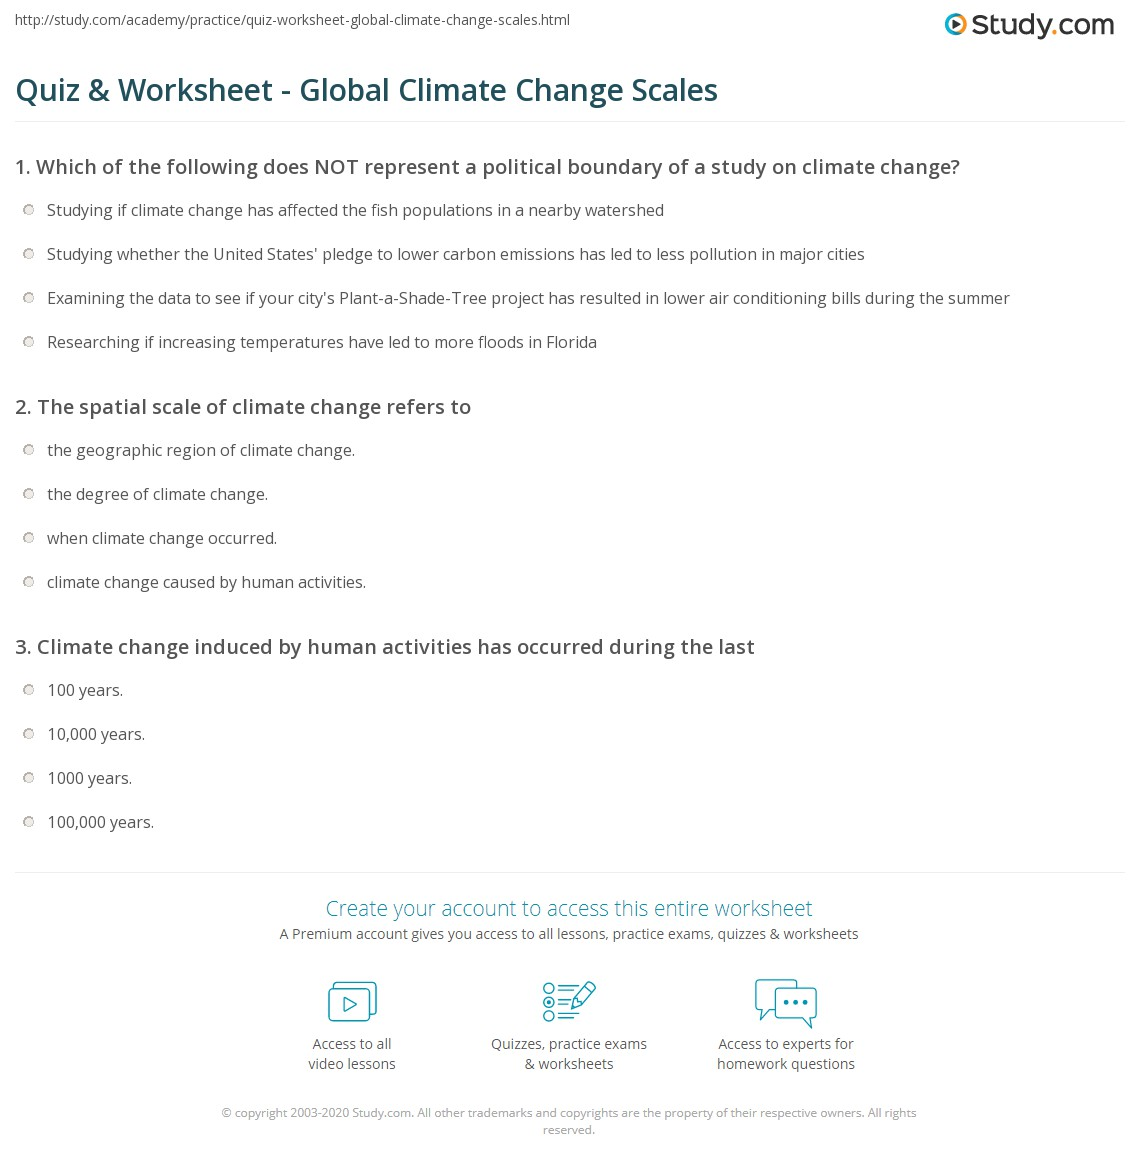 Rd Grade Elapsed Time Worksheet further Ls Ch Key also Quiz Worksheet Global Climate Change Scales together with Quiz Worksheet Human Response To Stimuli moreover Original. on stimulus response worksheets math science